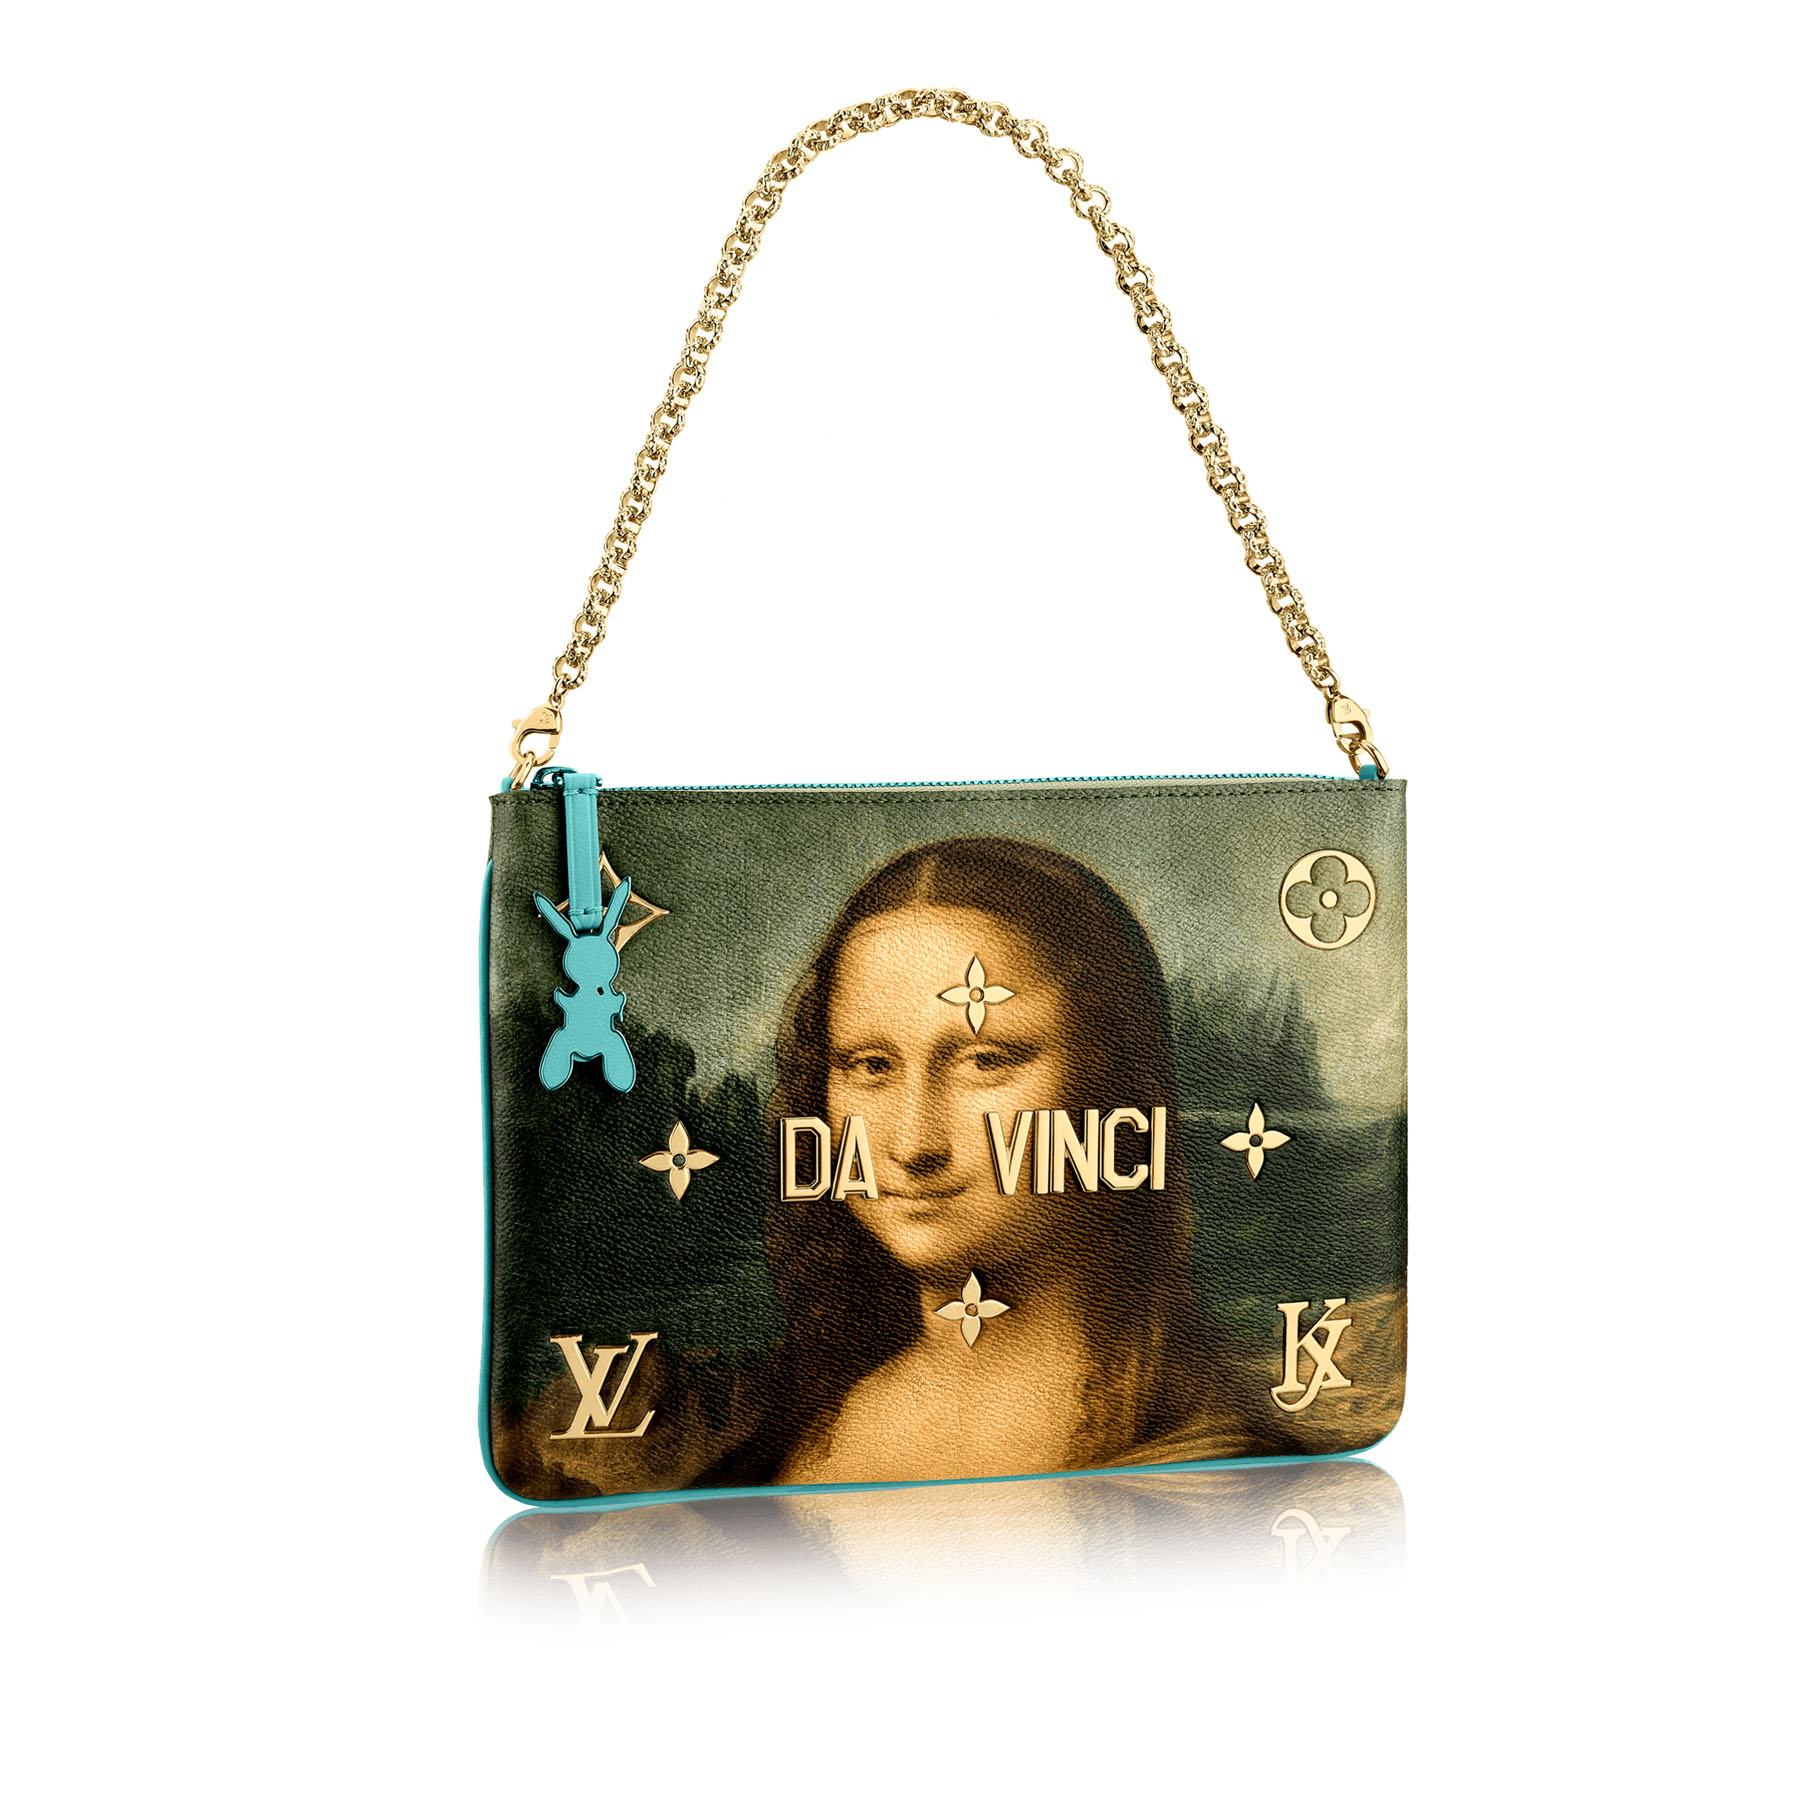 Louis-Vuitton-Jeff-Koons-Collaboration-the-impression-25